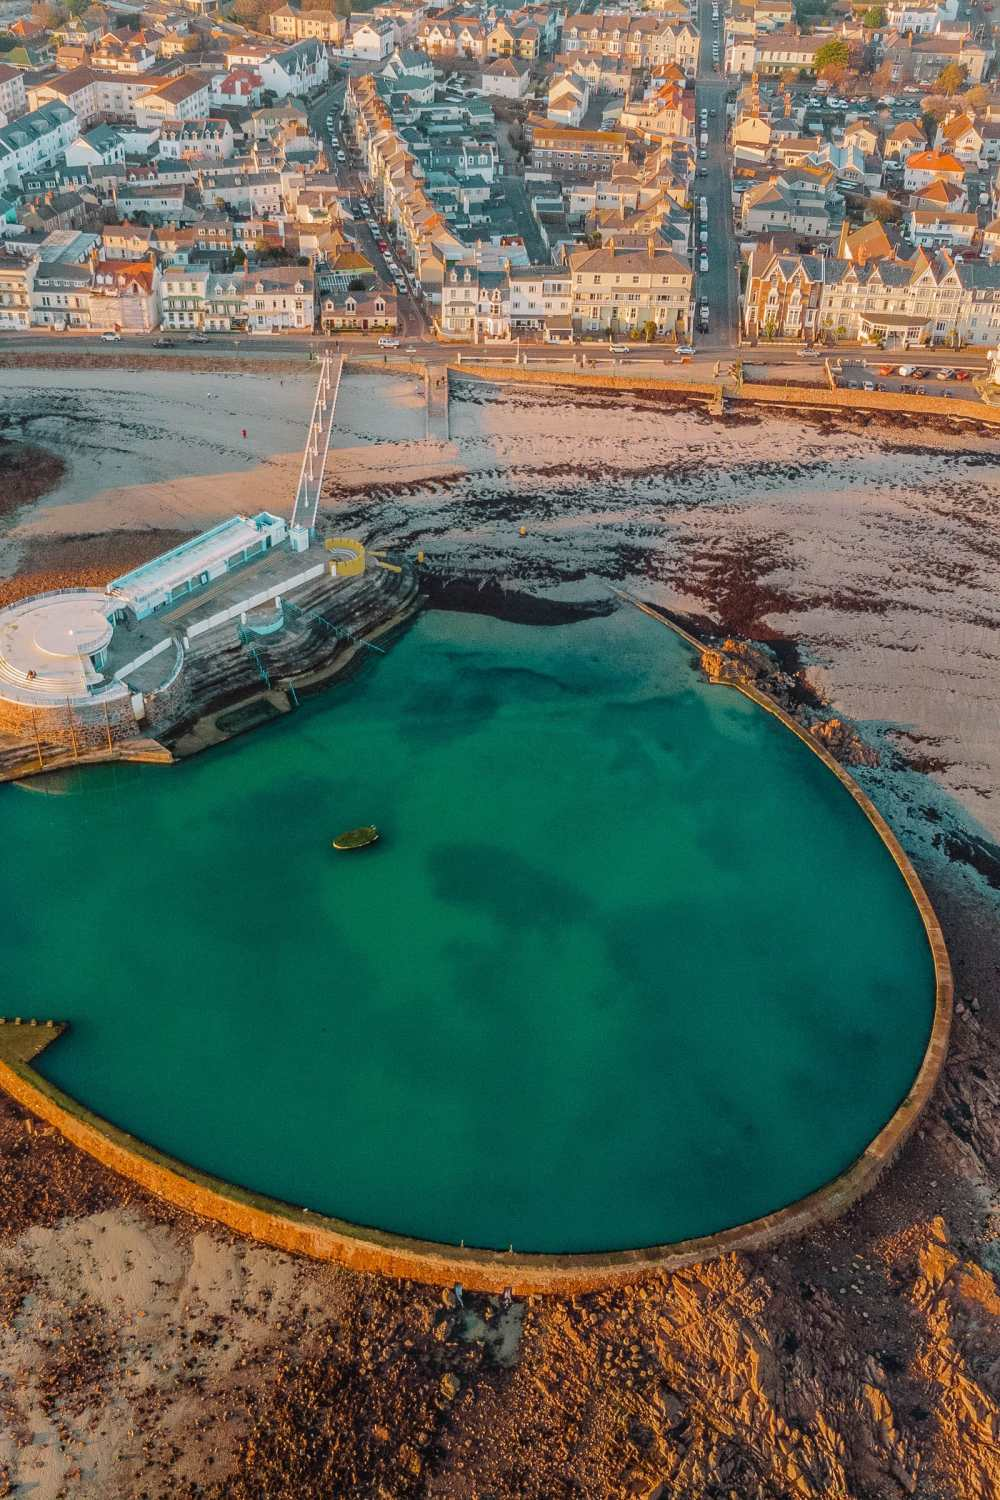 Tidal pool In Jersey